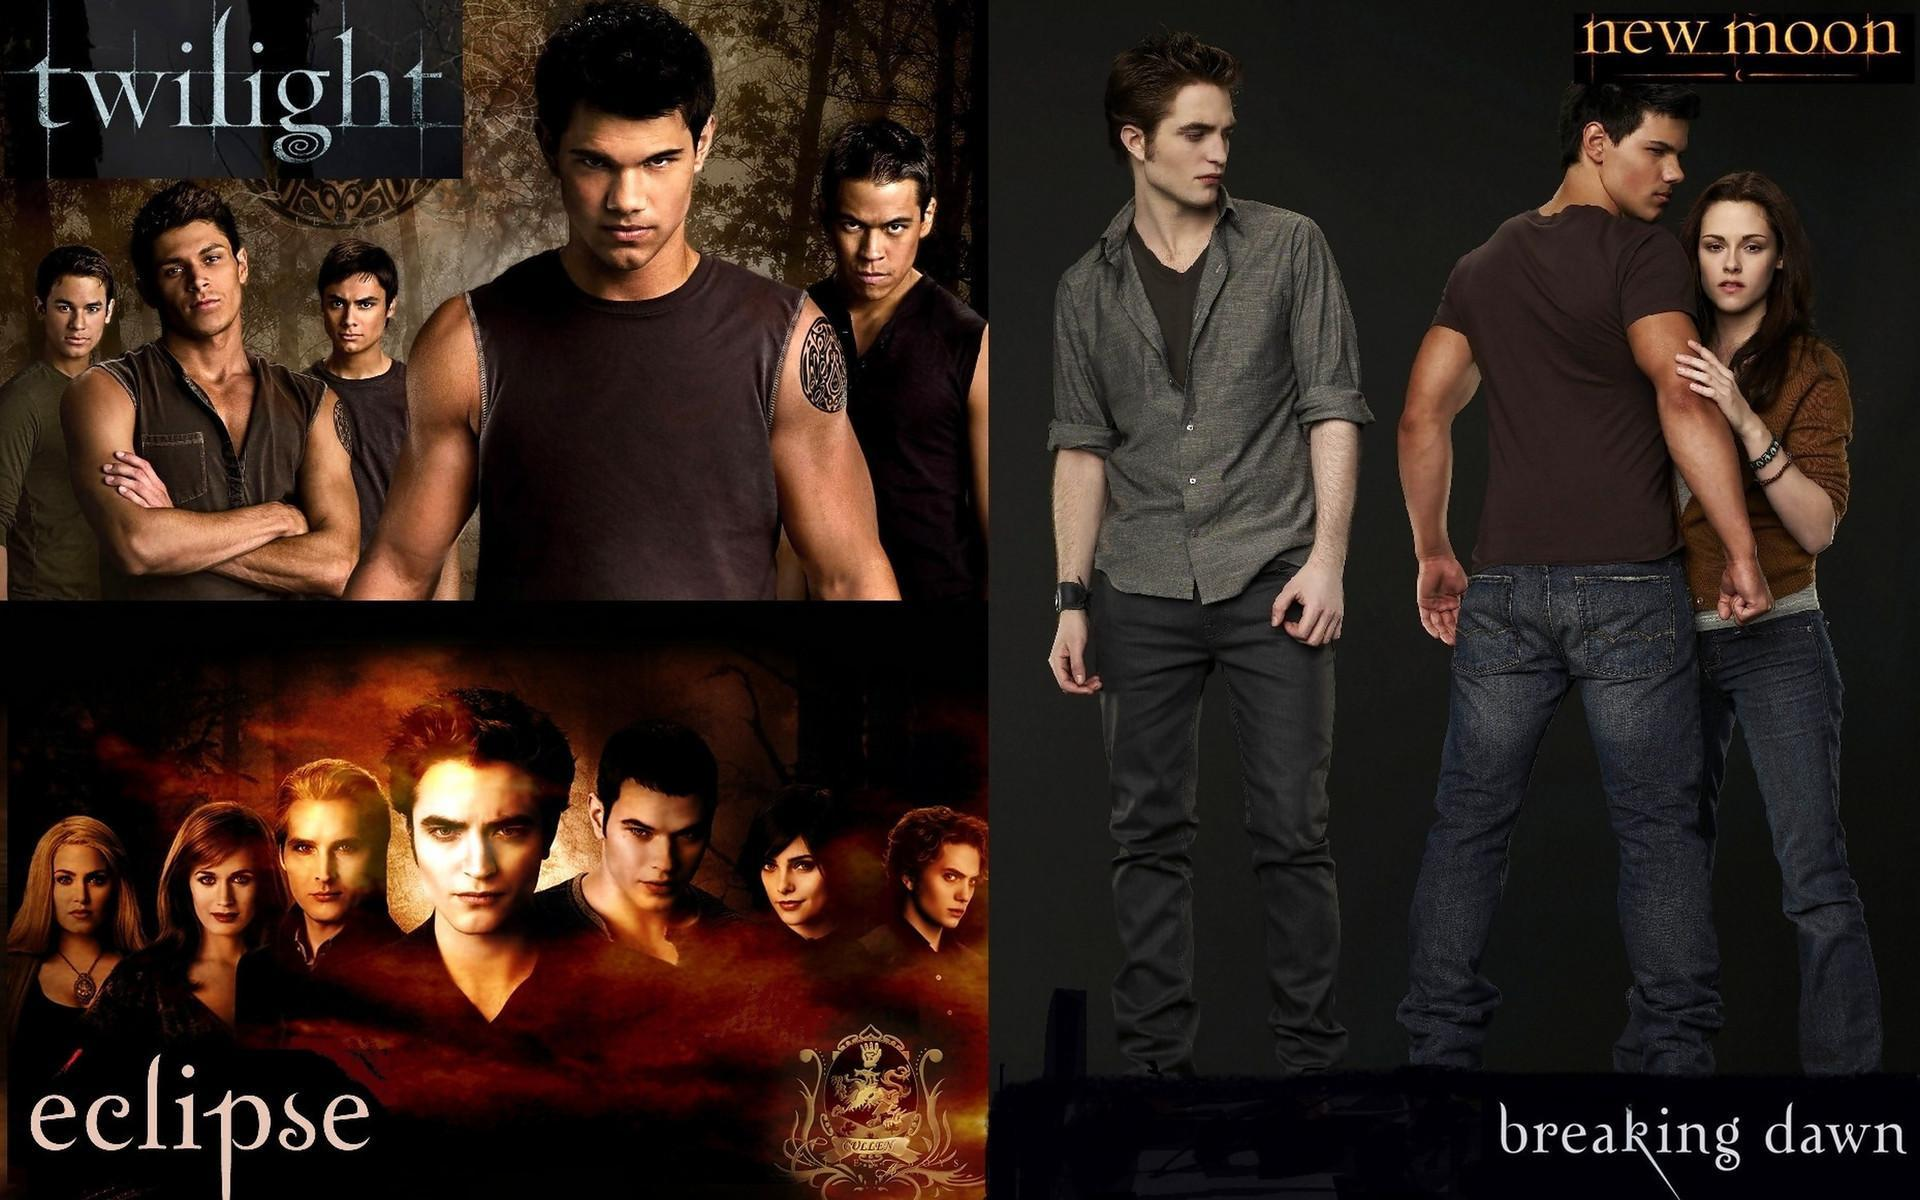 The Twilight Saga Test (first series)